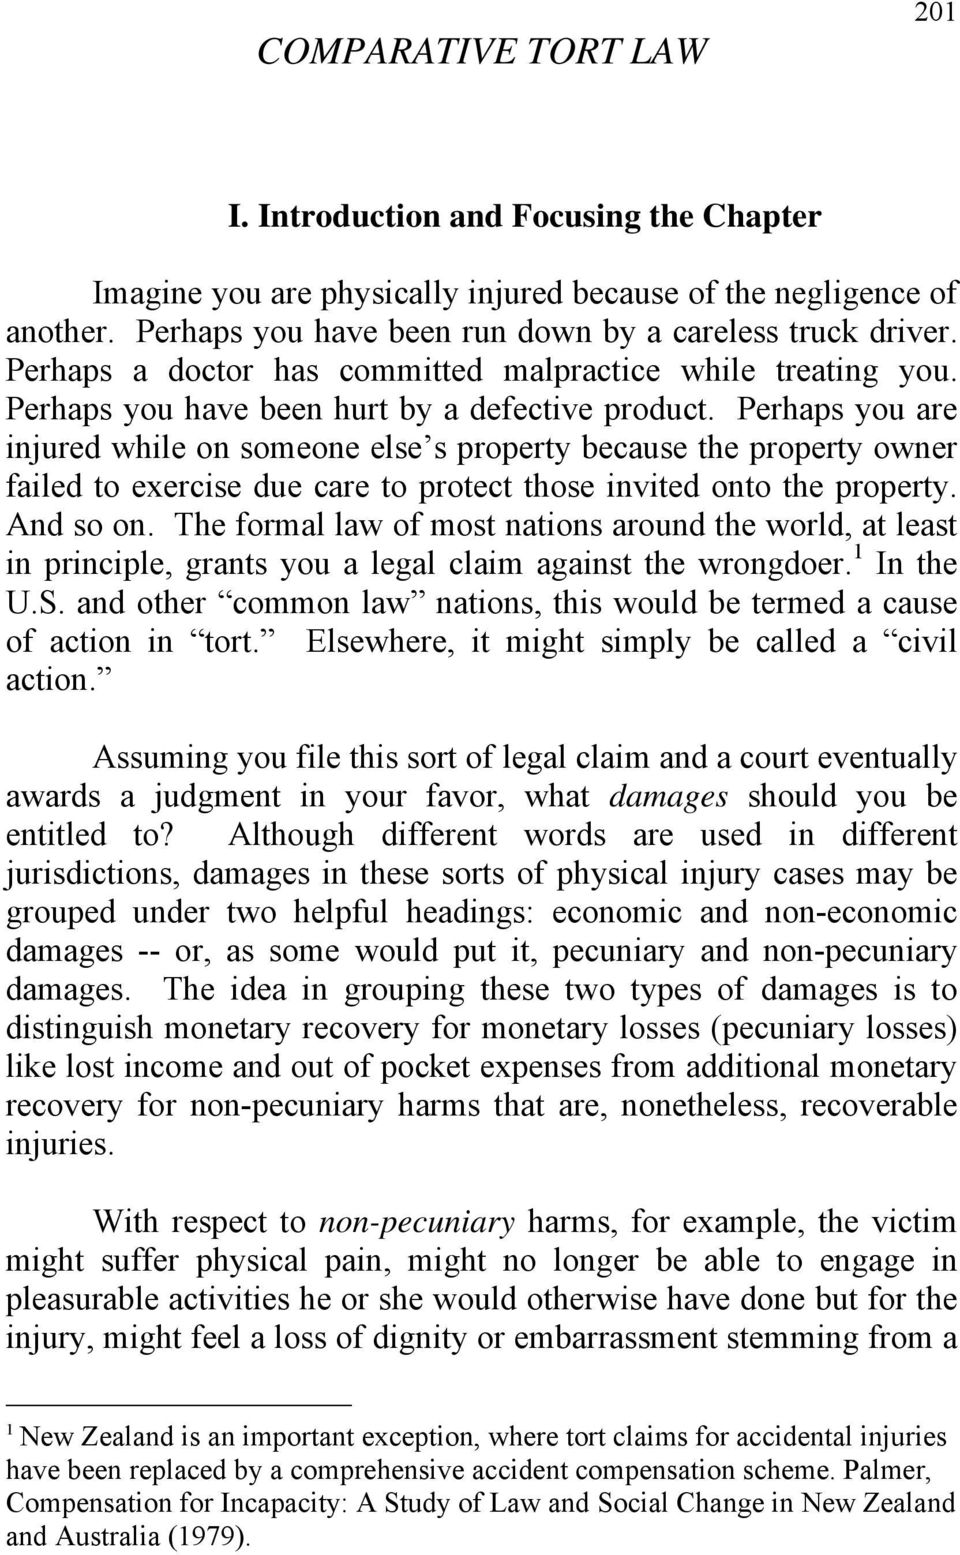 Perhaps you are injured while on someone else s property because the property owner failed to exercise due care to protect those invited onto the property. And so on.